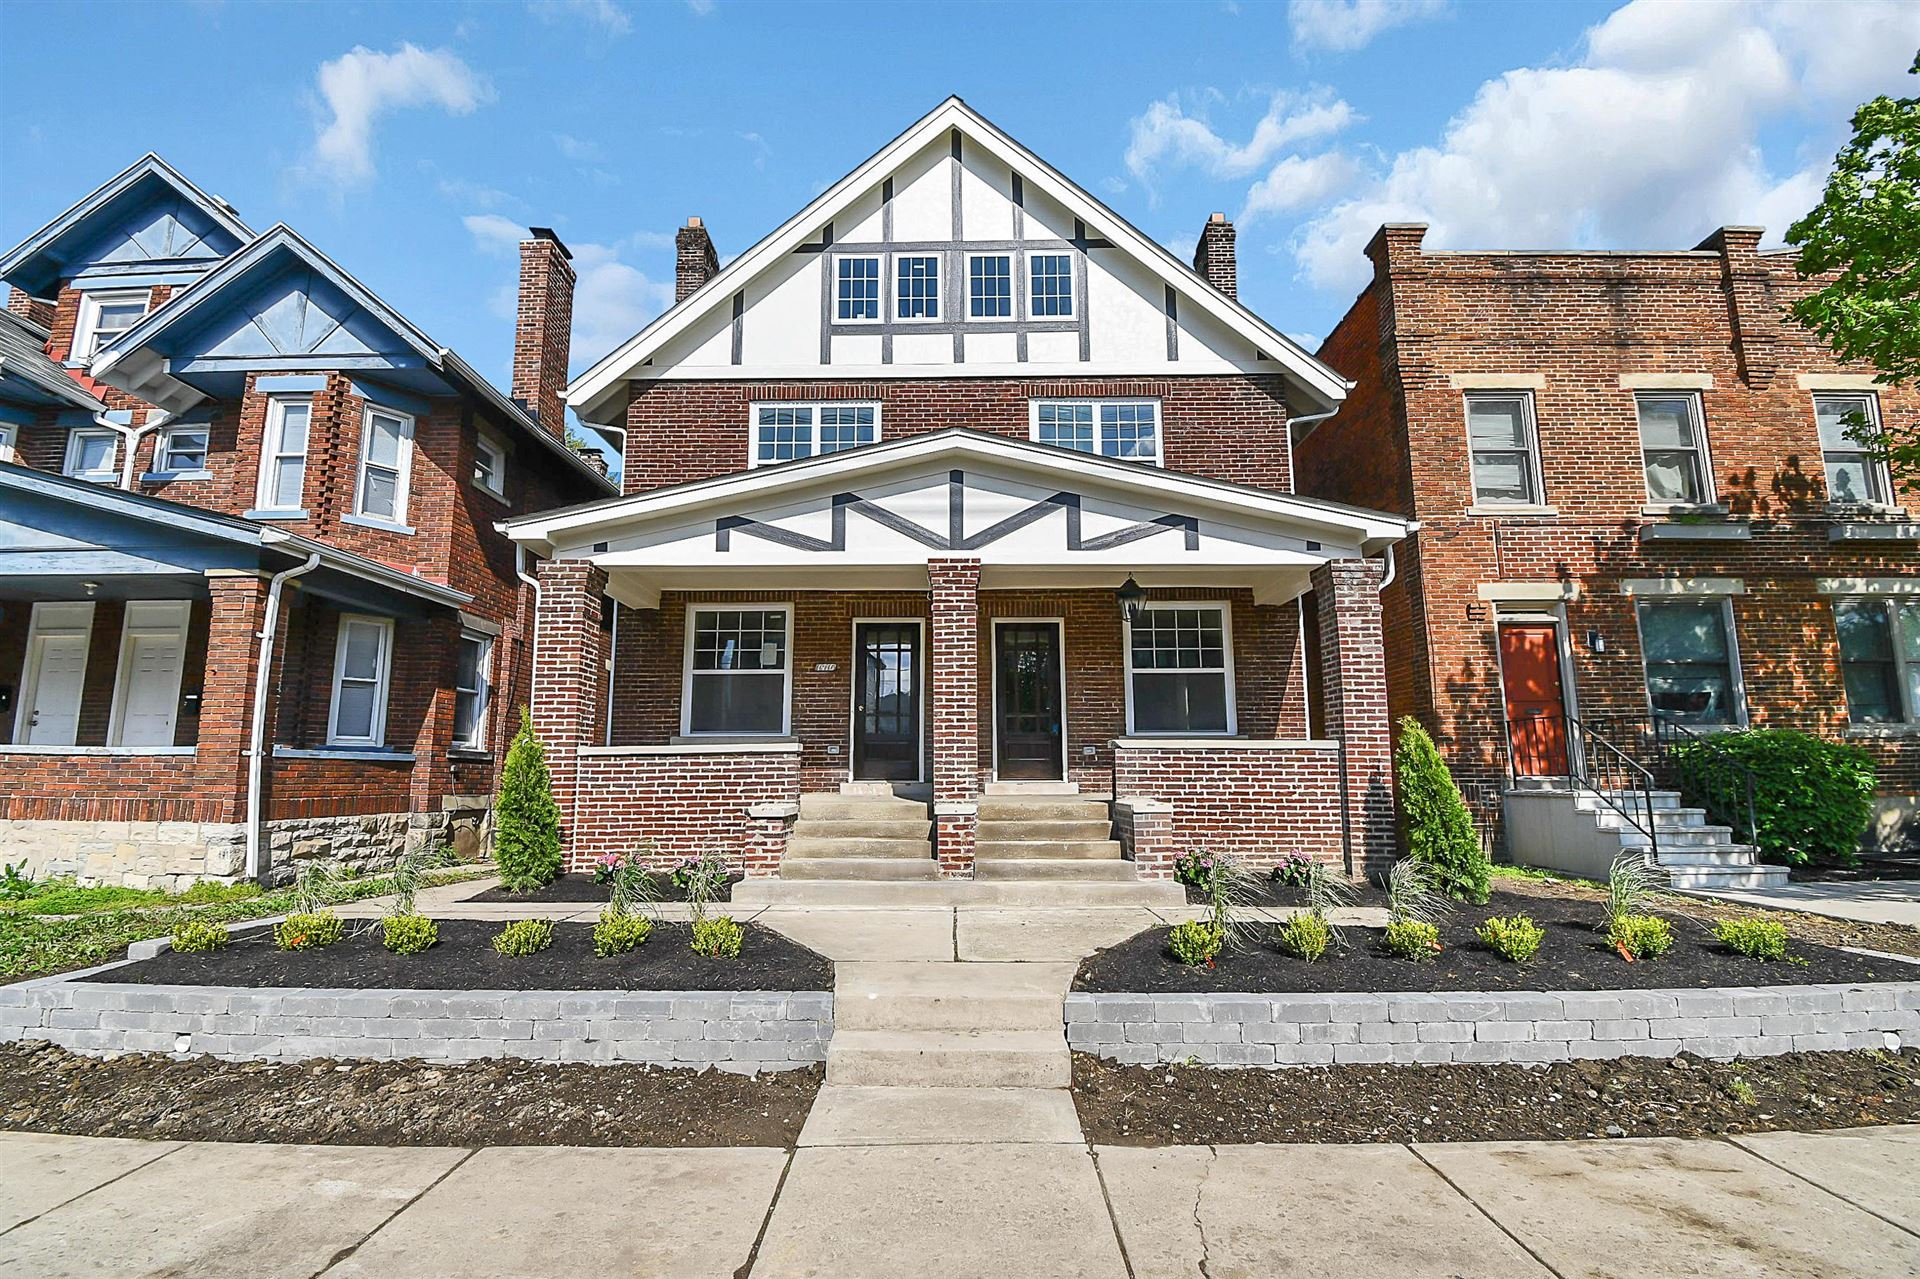 Photo for 1416 N 4th Street, Columbus, OH 43201 (MLS # 220033878)